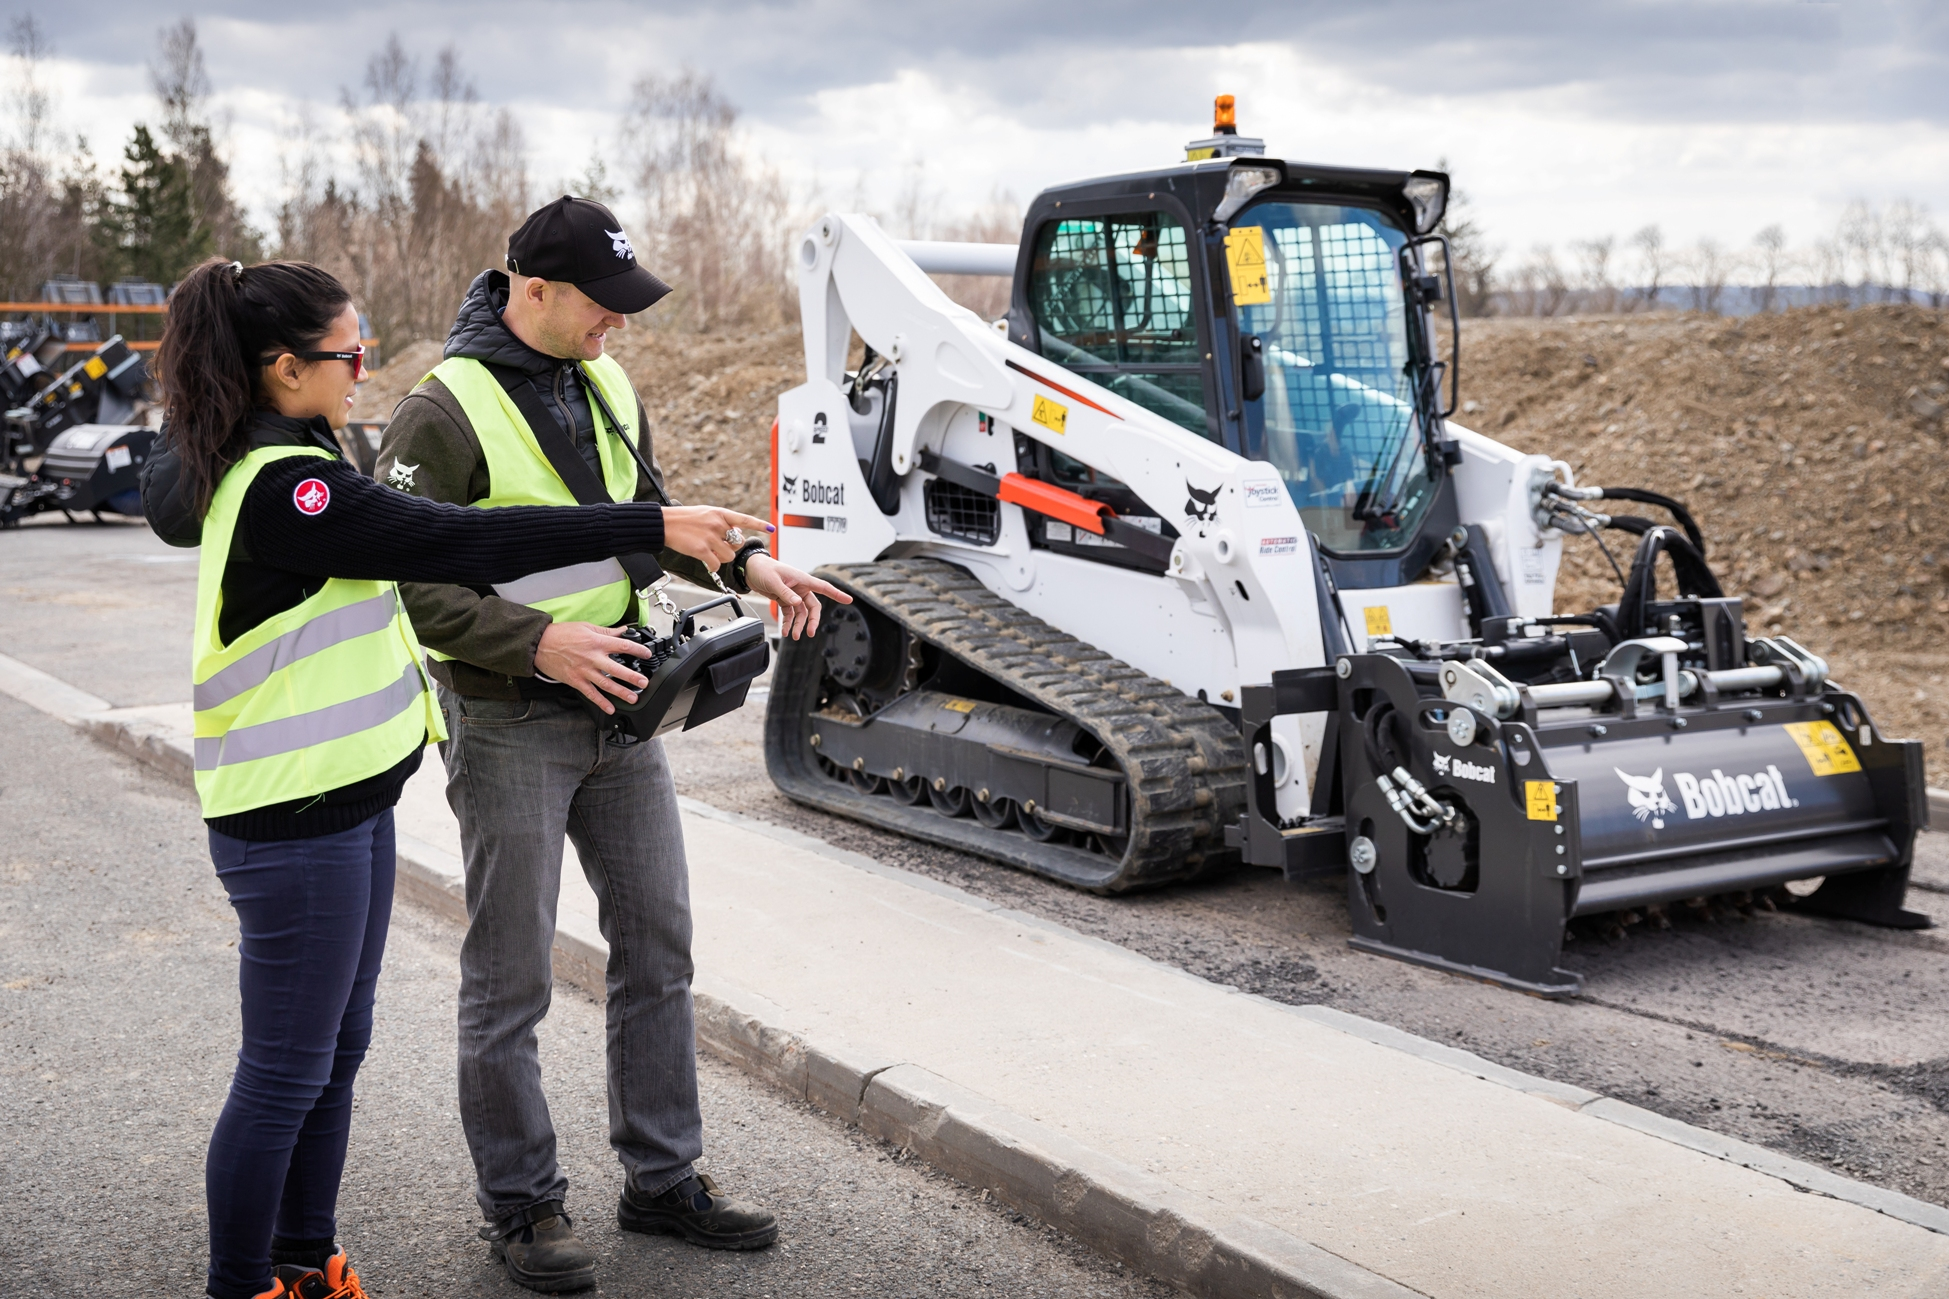 Bobcat launches first OEM-developed remote control system